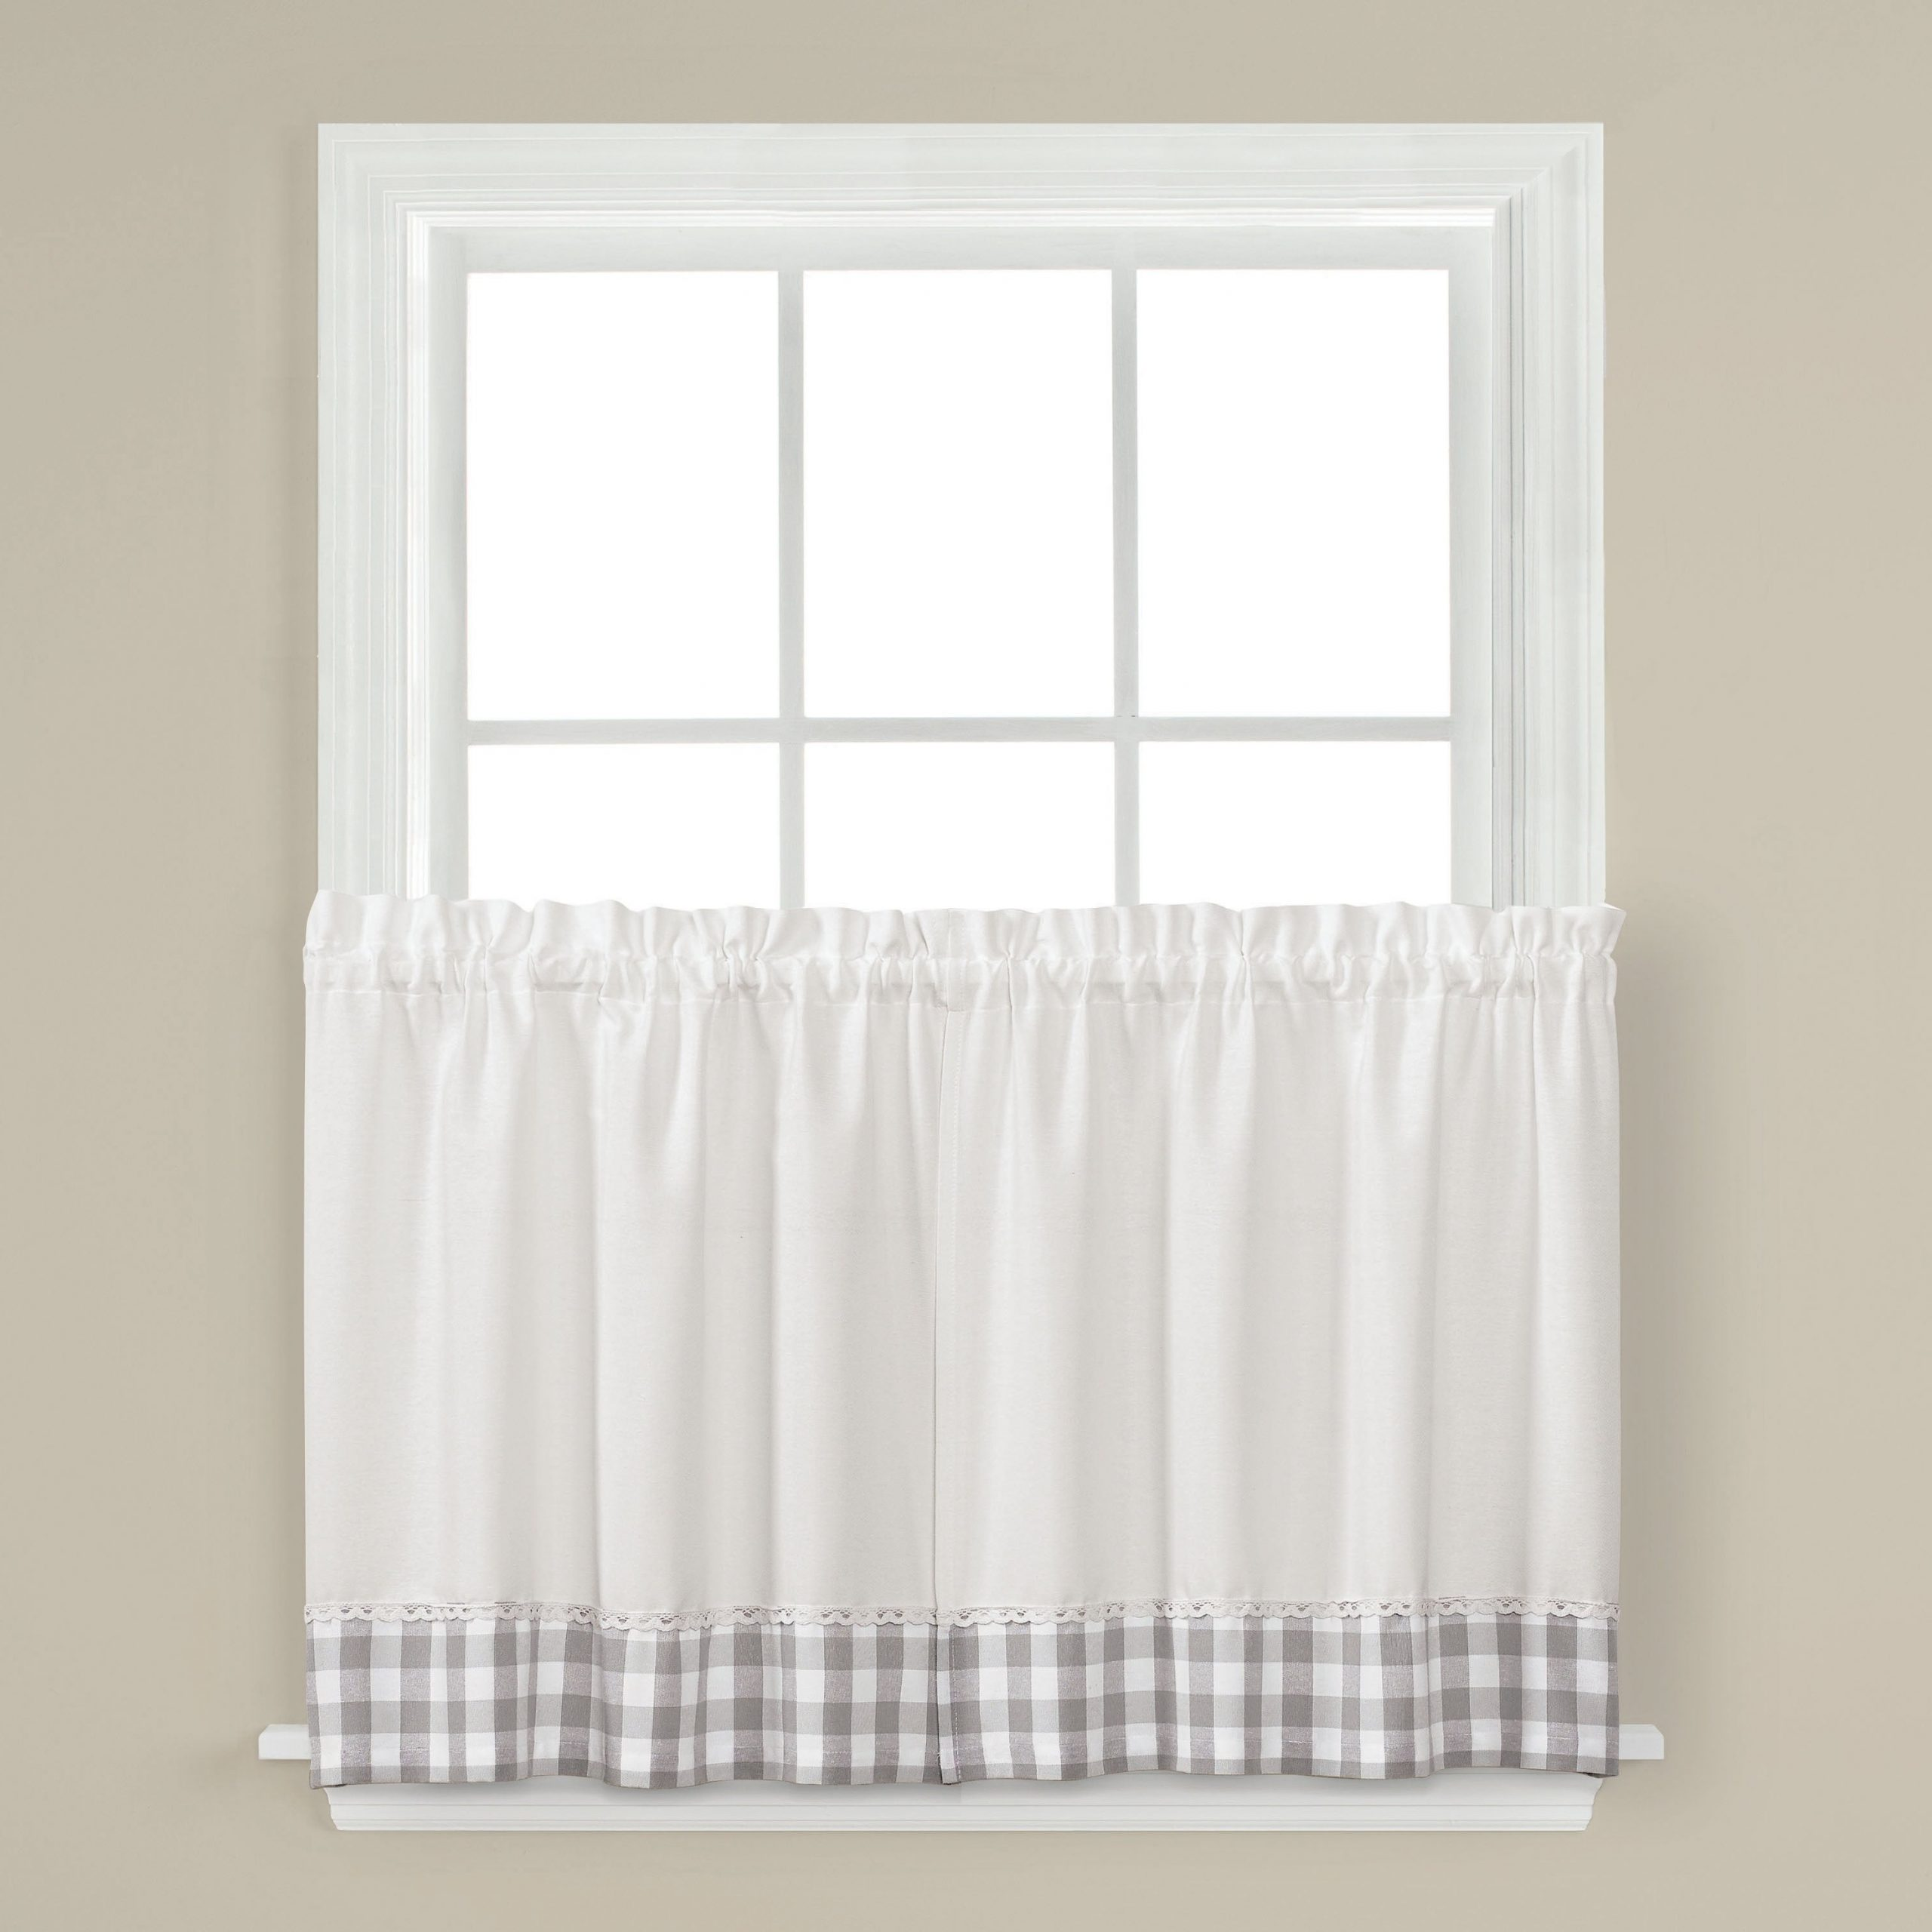 Skl Home Cumberland 36 Inch Tier Pair In Dove Gray Regarding Well Known Dove Gray Curtain Tier Pairs (View 14 of 20)